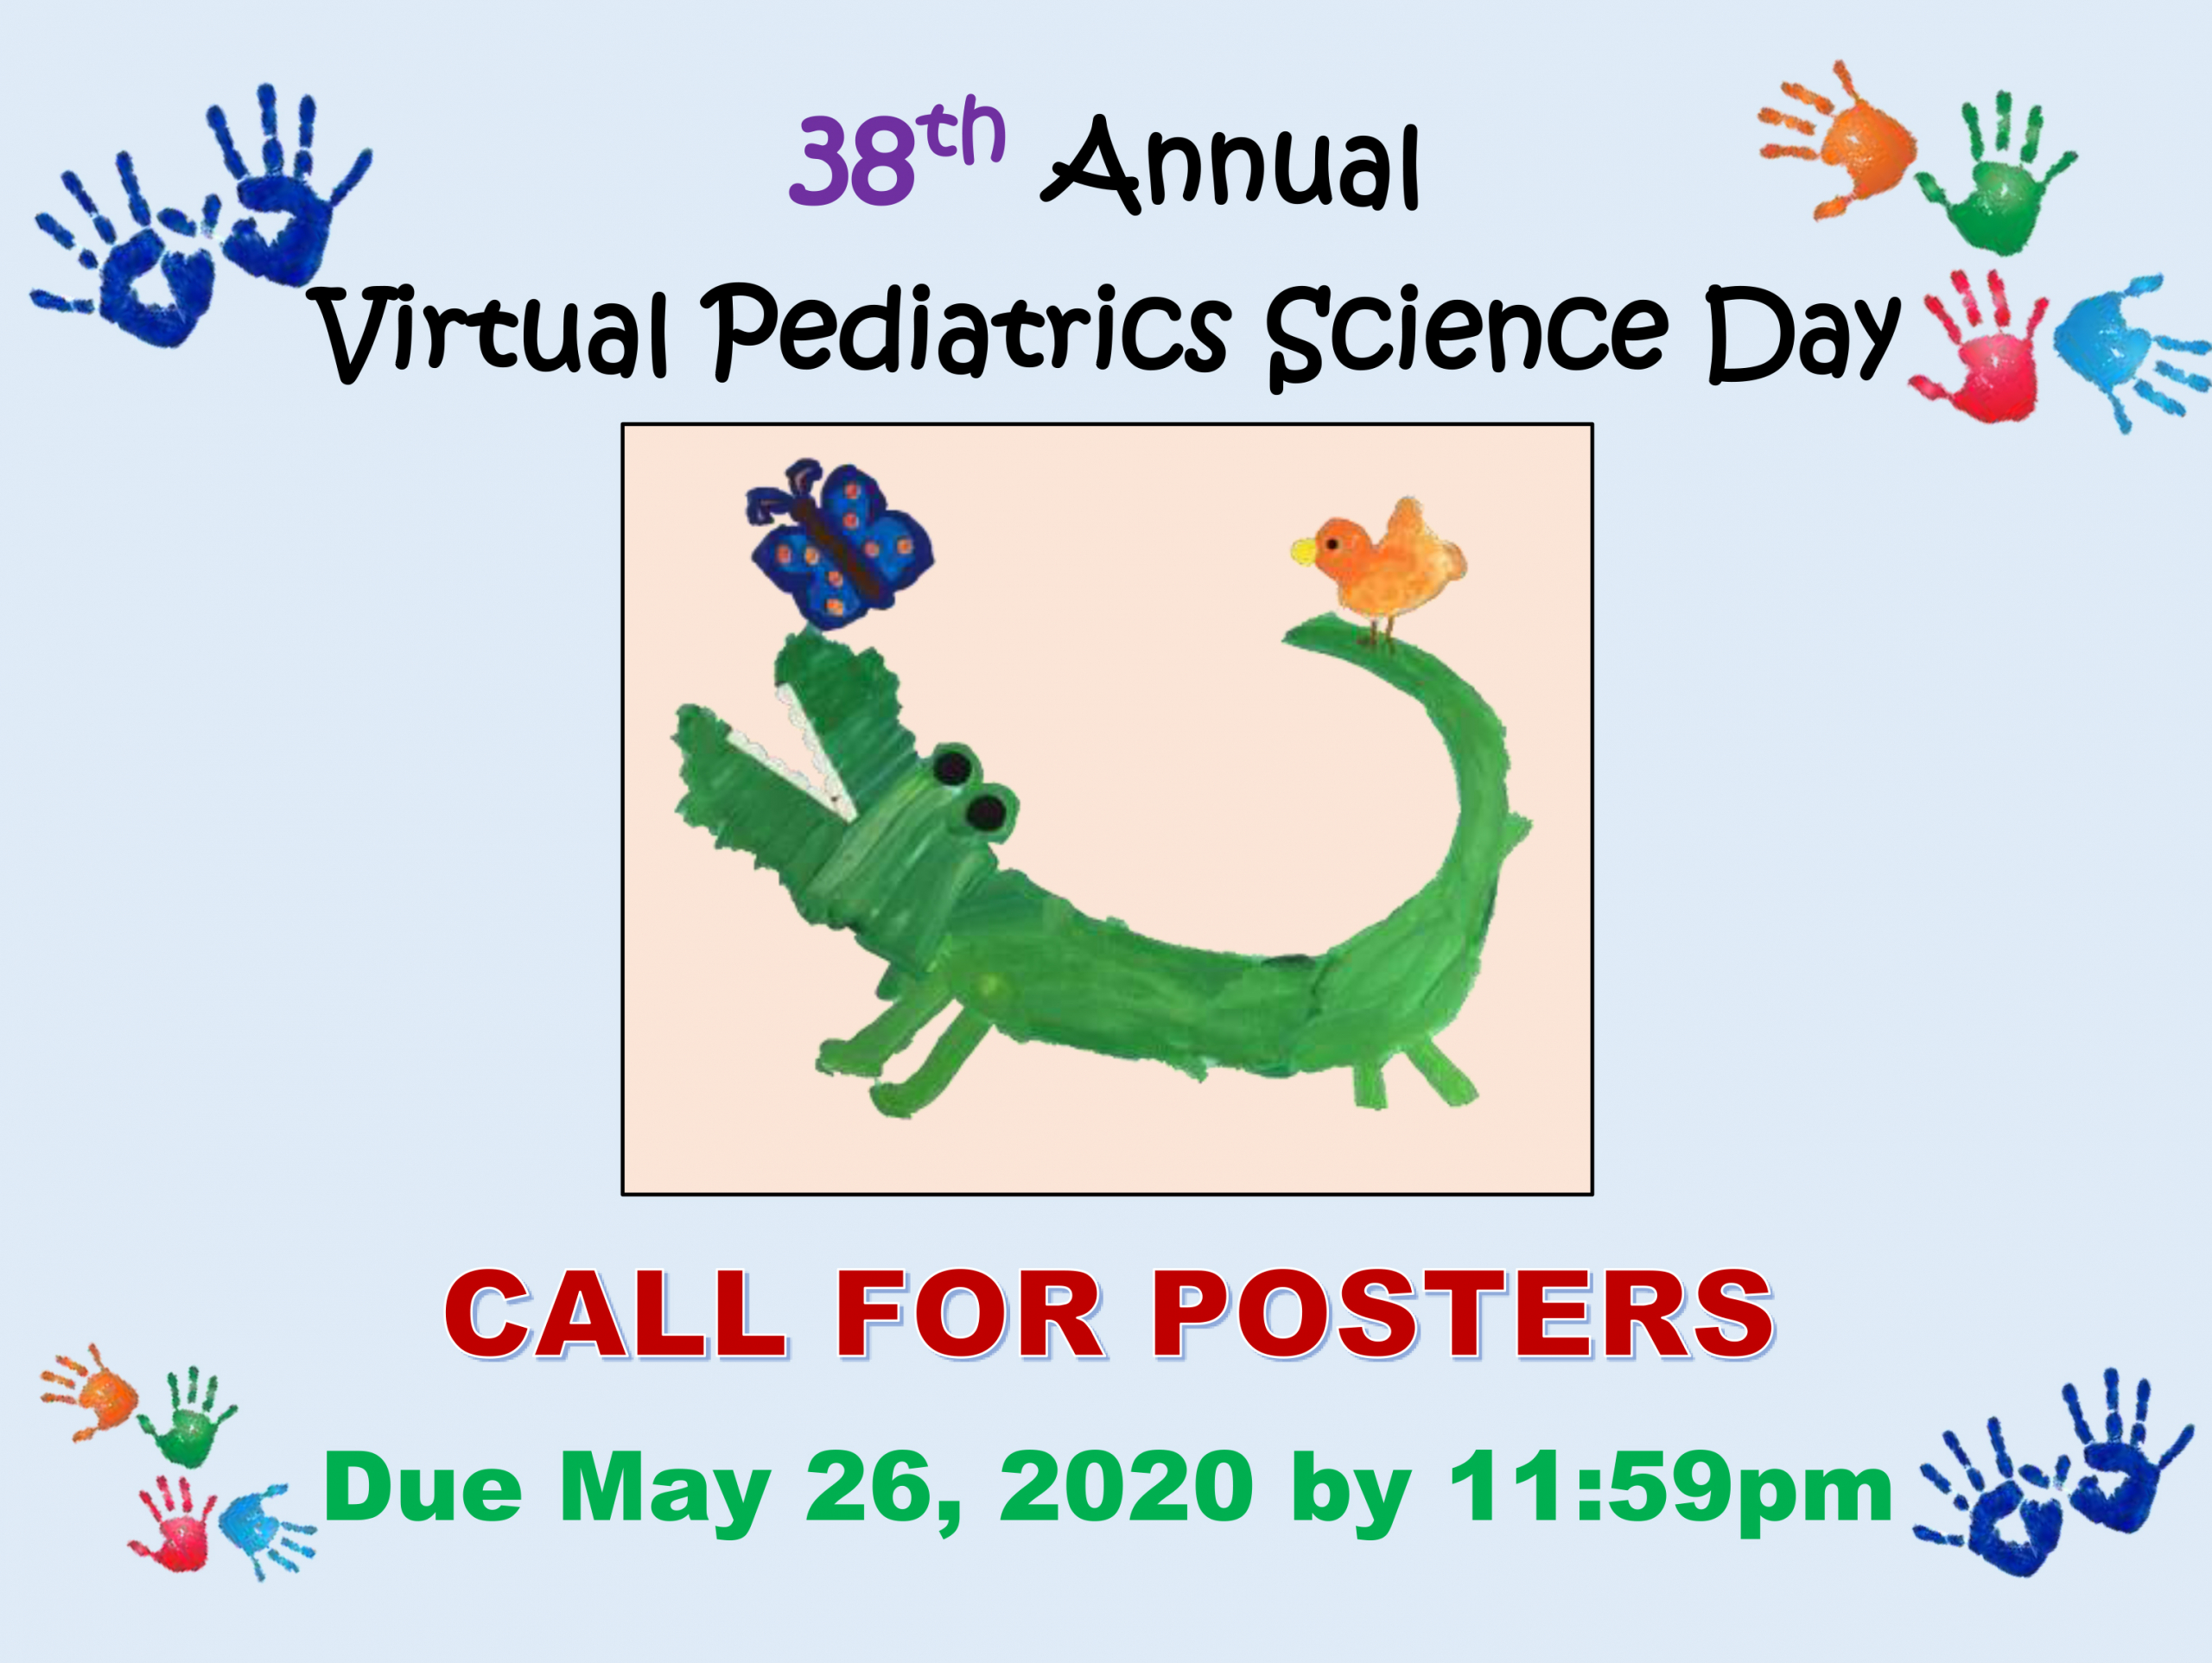 2020 Pediatrics Science Day Call for Posters Flyer